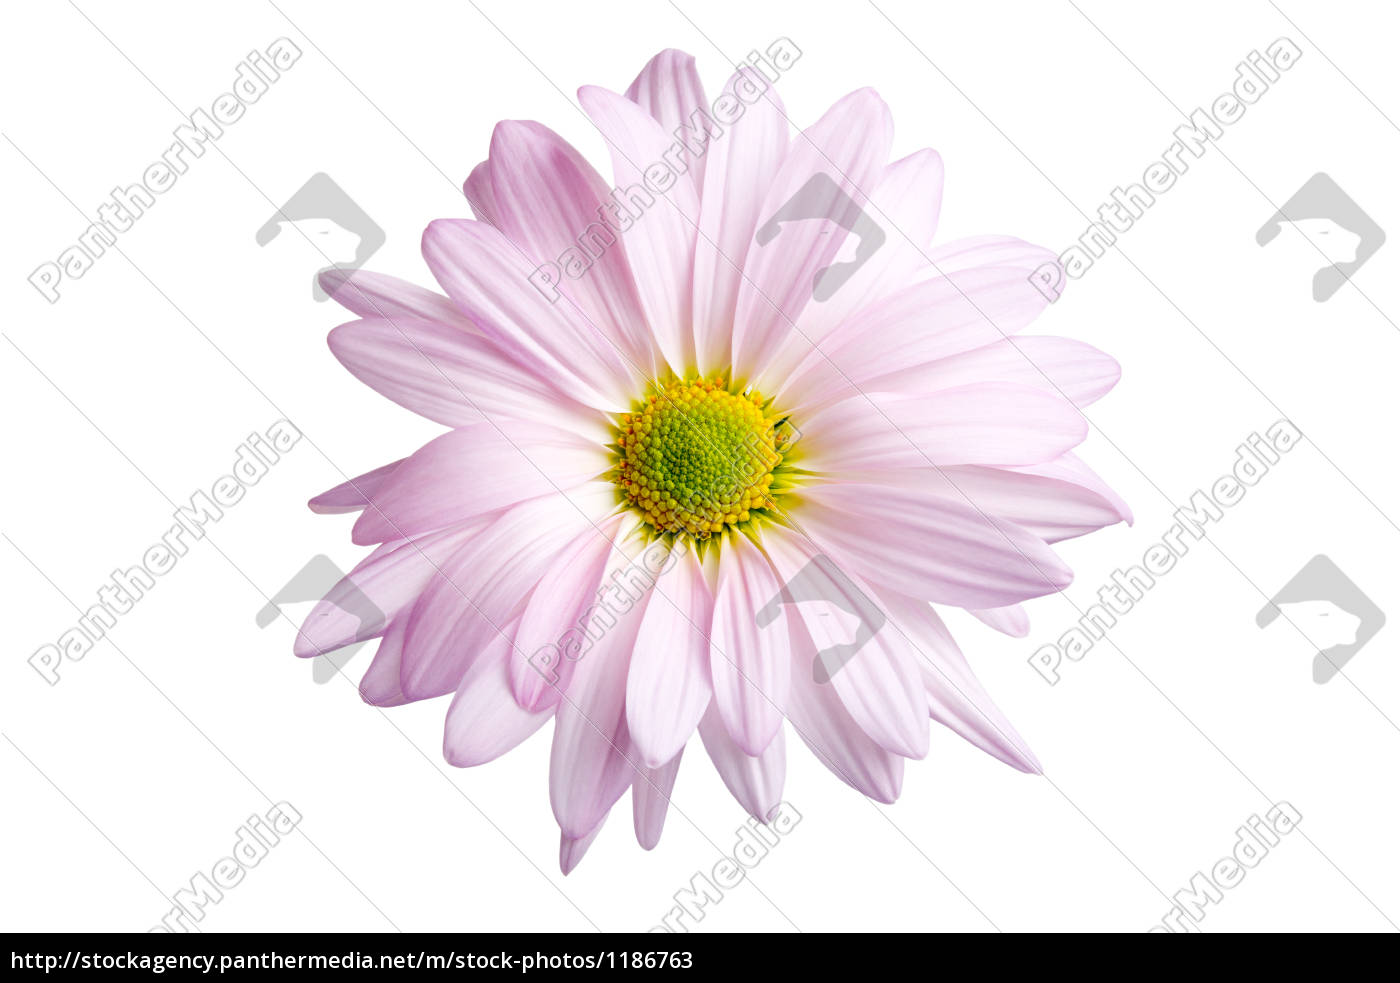 daisy, isolated - 1186763